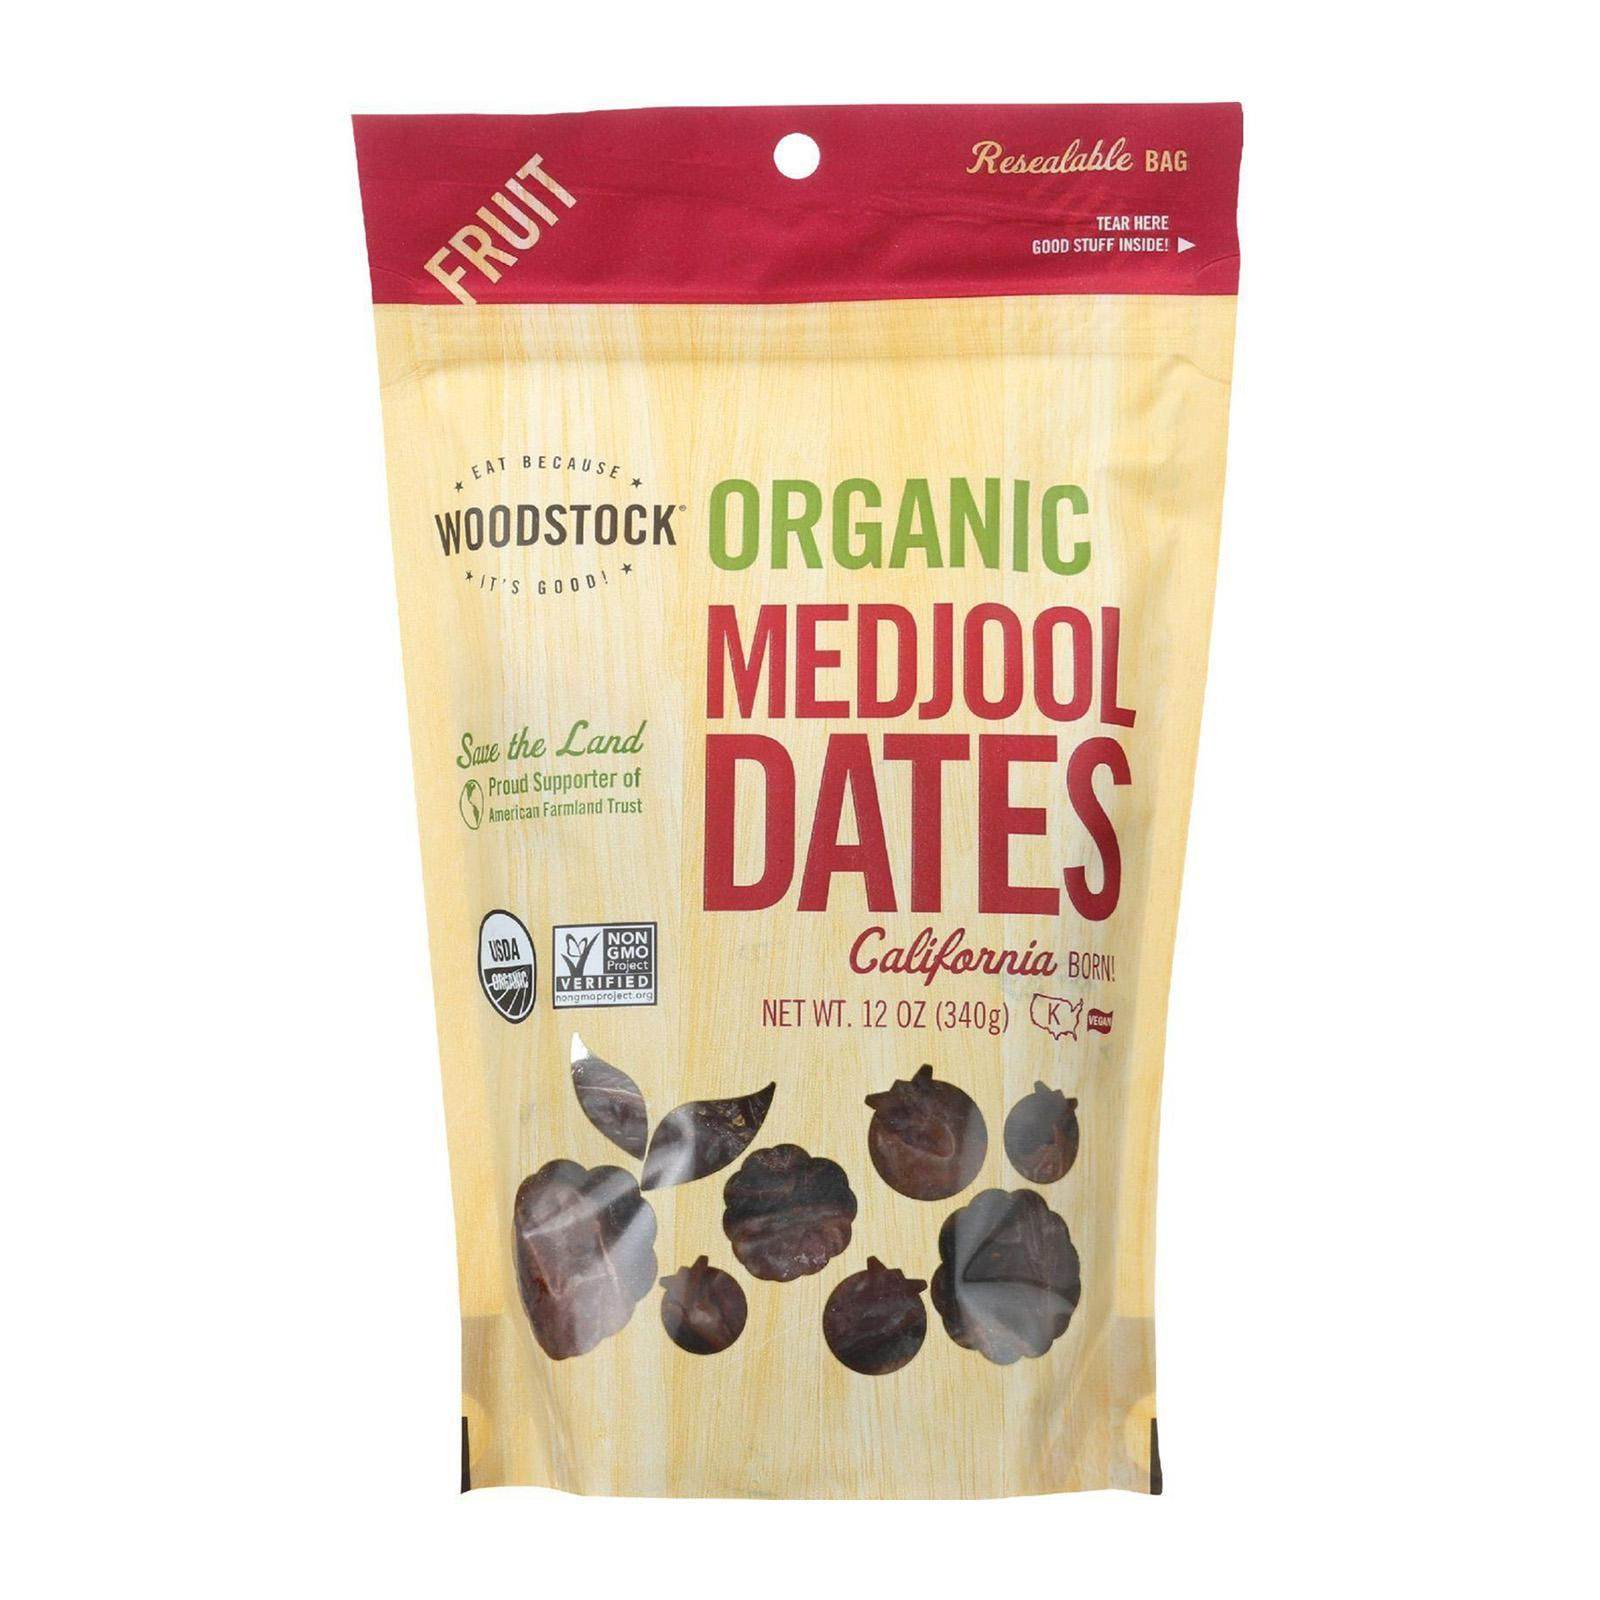 Woodstock Organic Medjool Dates - By Wholesome Harvest